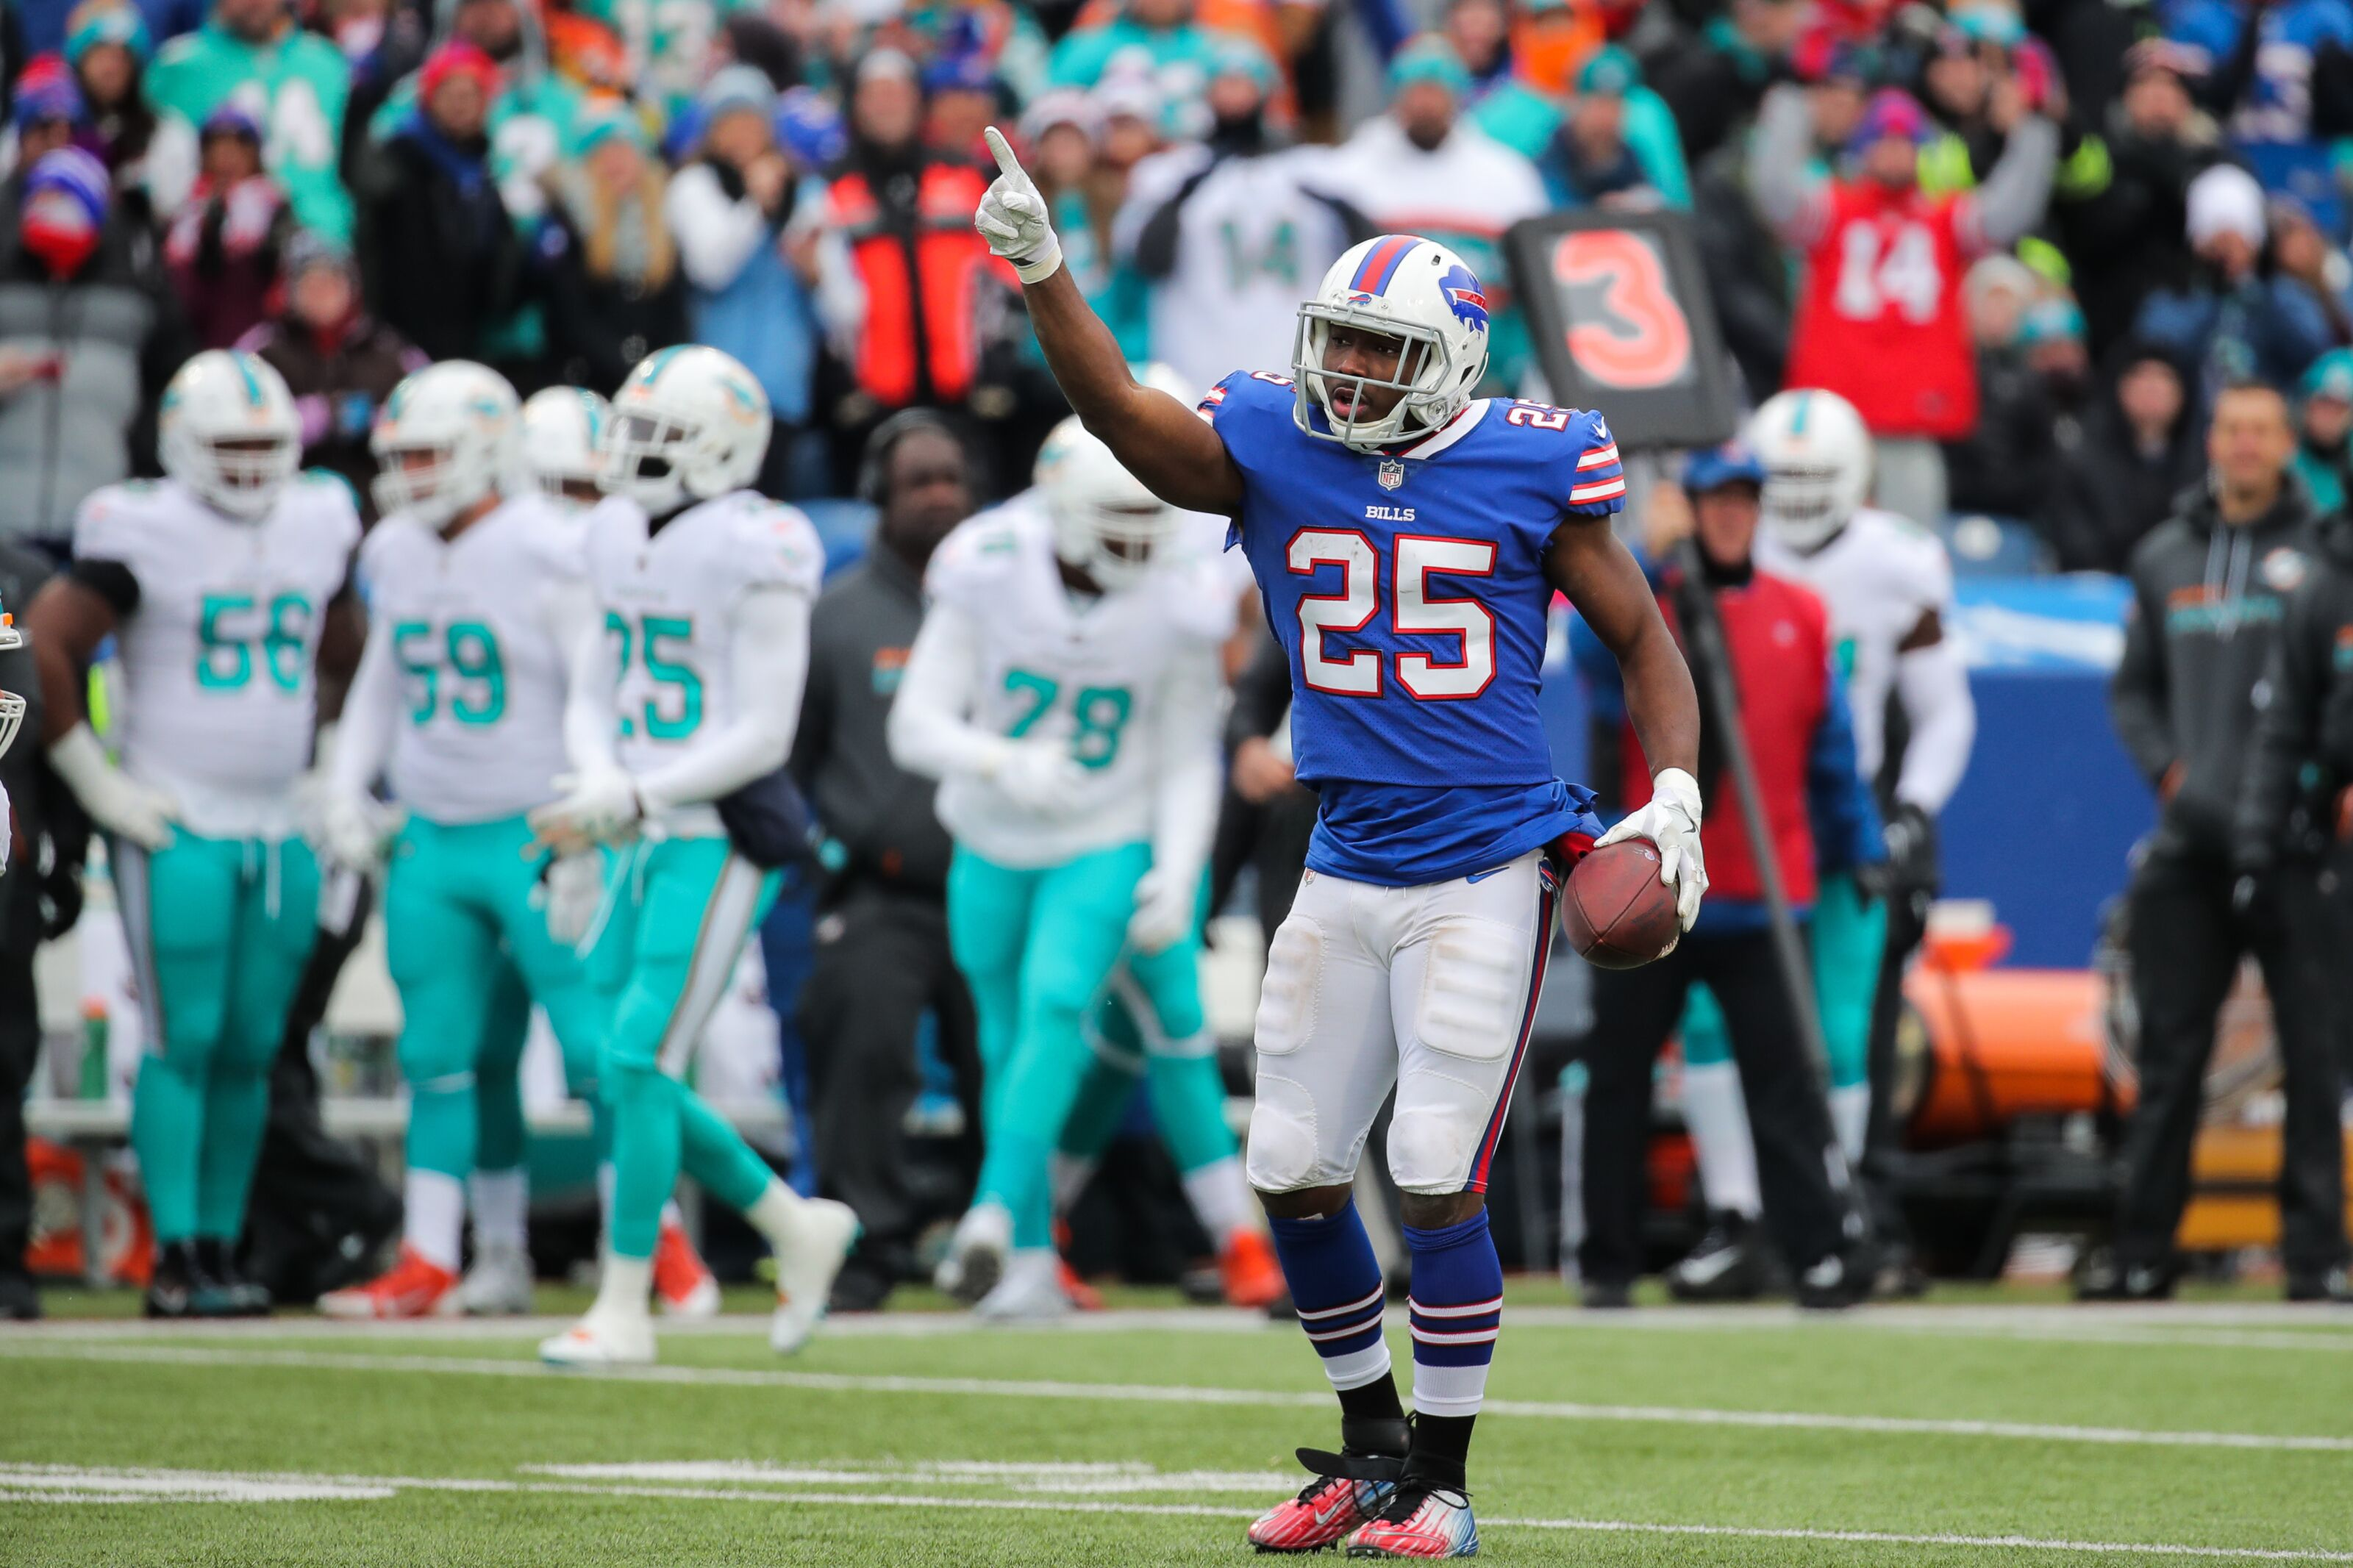 The Morning Charge: LeSean McCoy's status among the greats